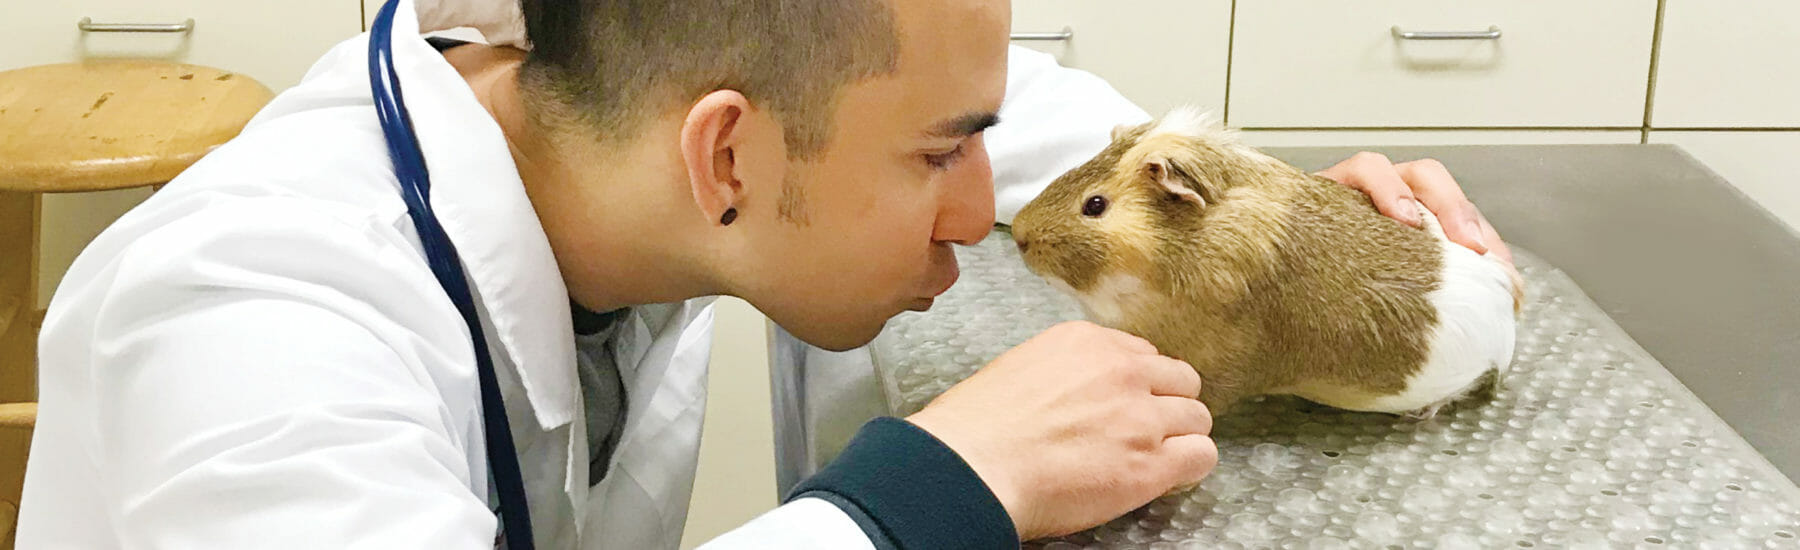 Veterinarian face to face with pocket pet